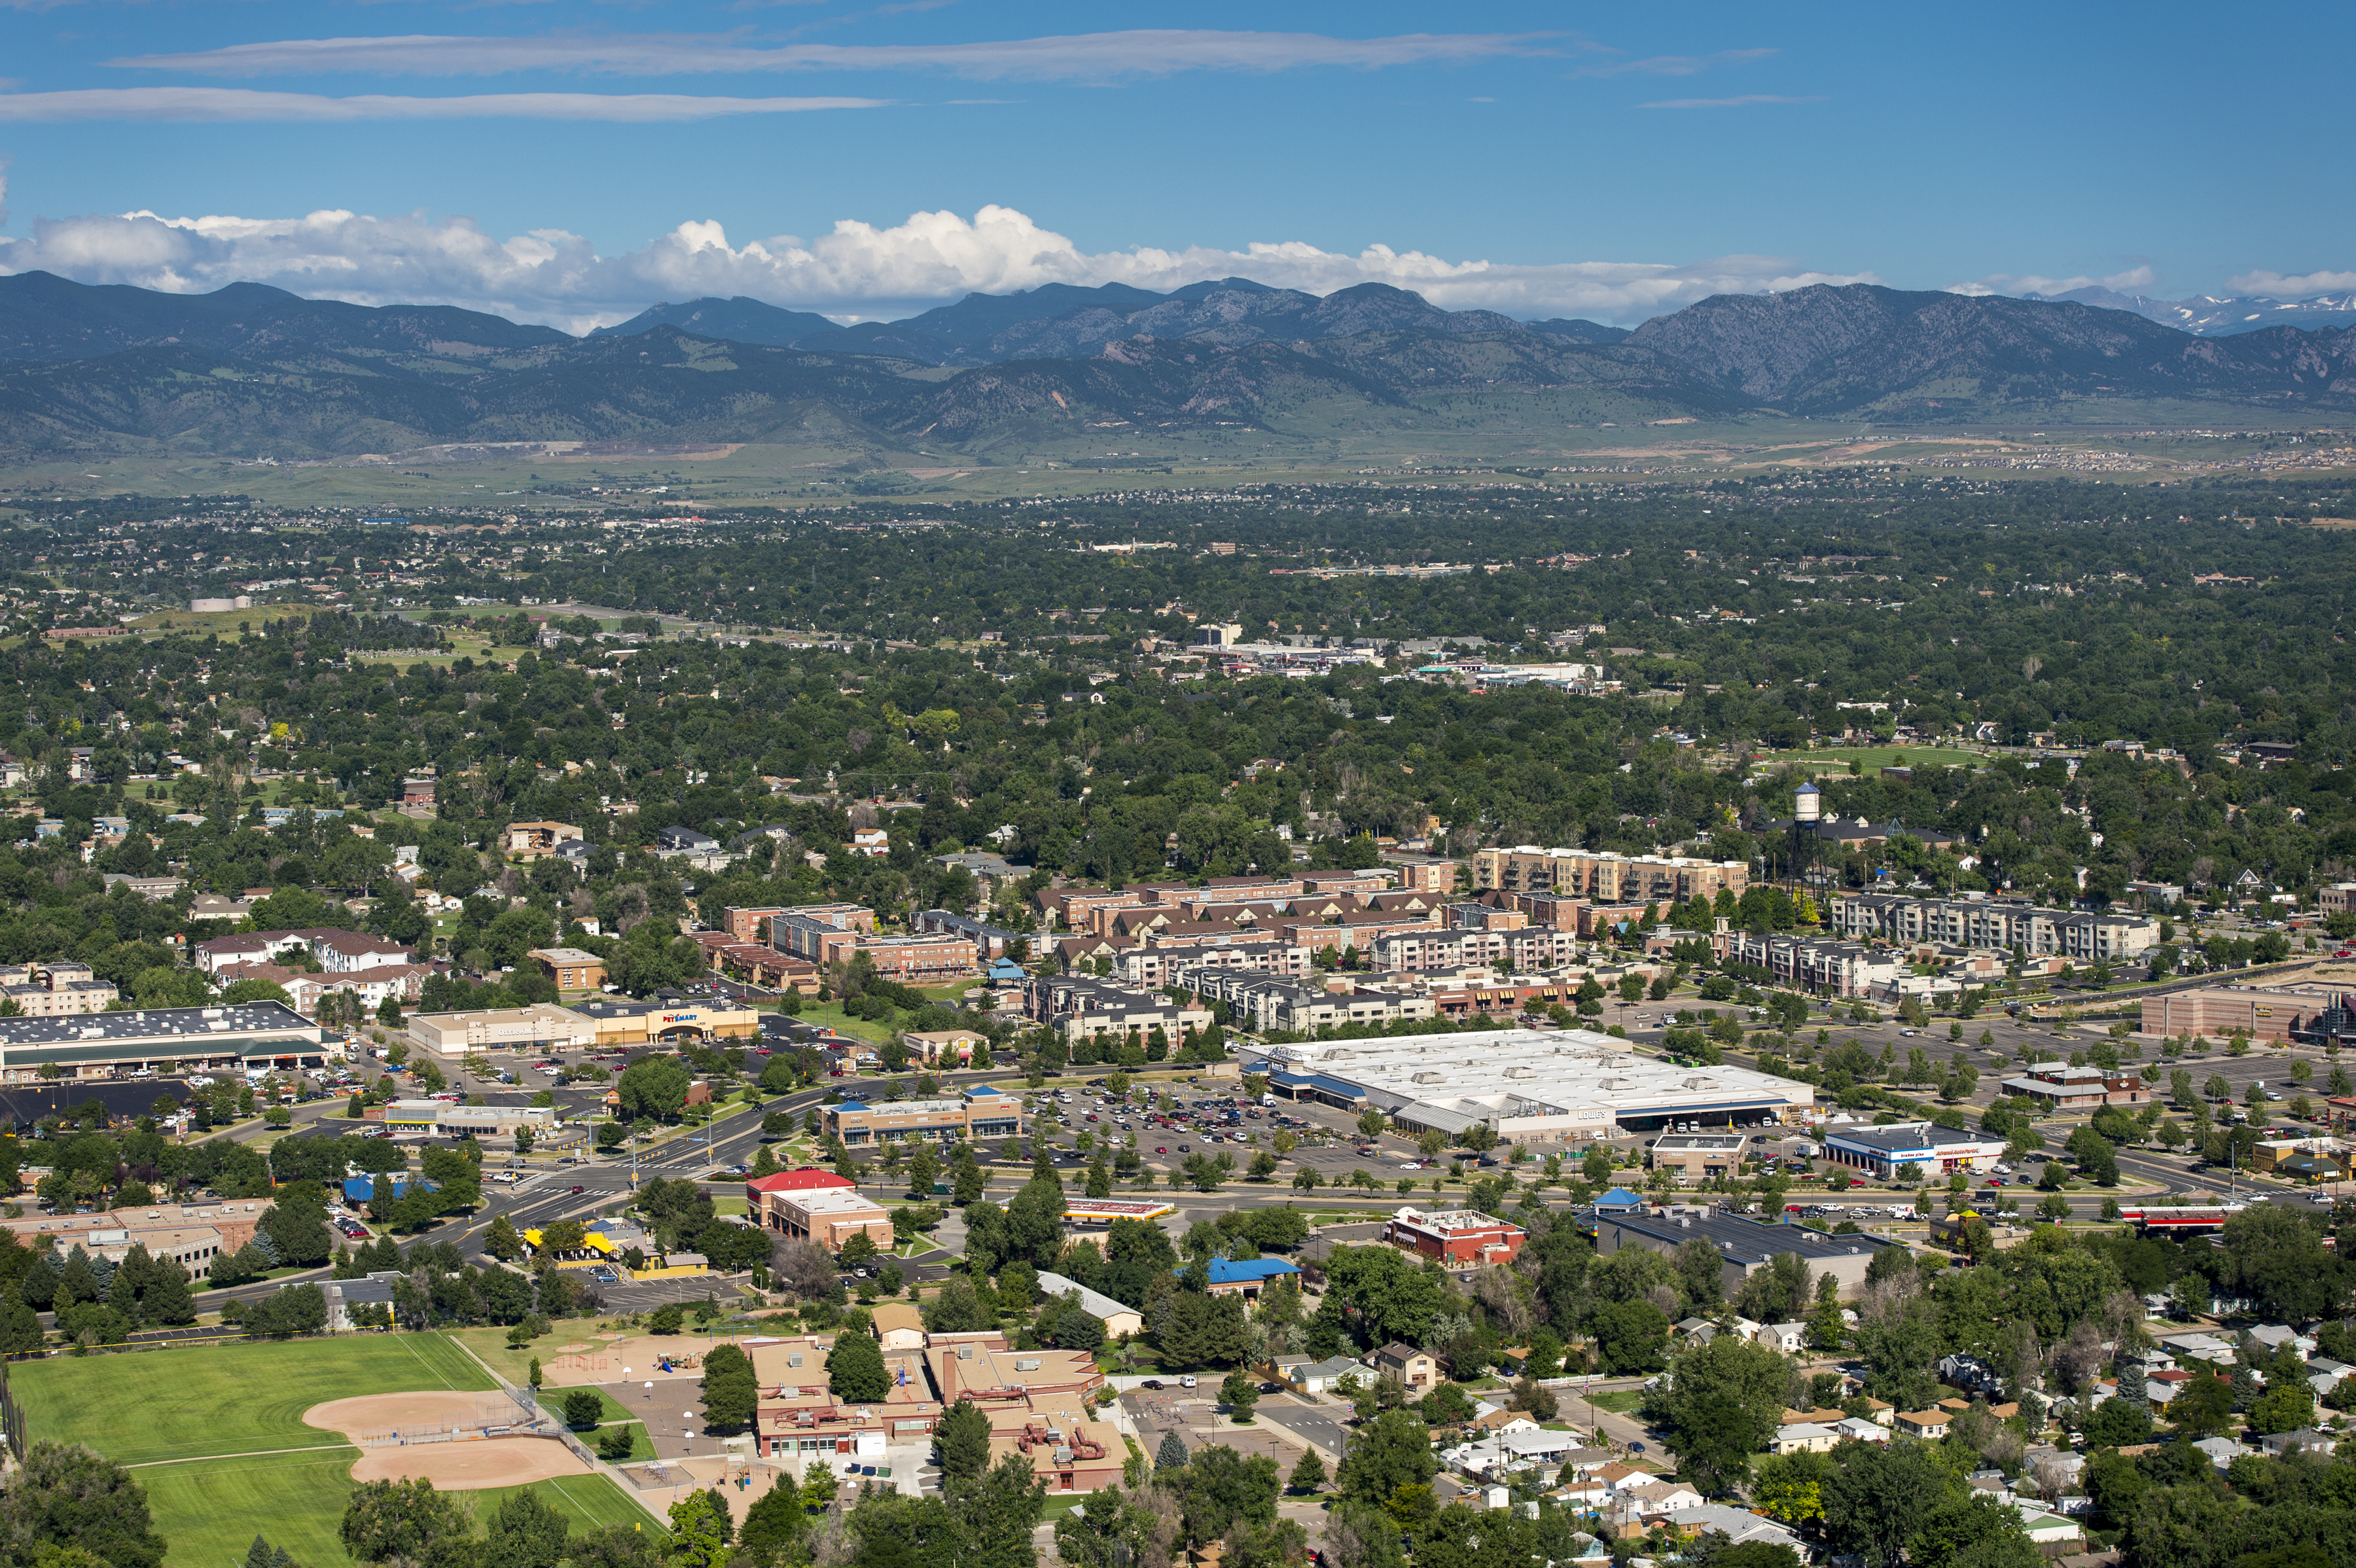 Aerial_image_of_Arvada,_Colorado